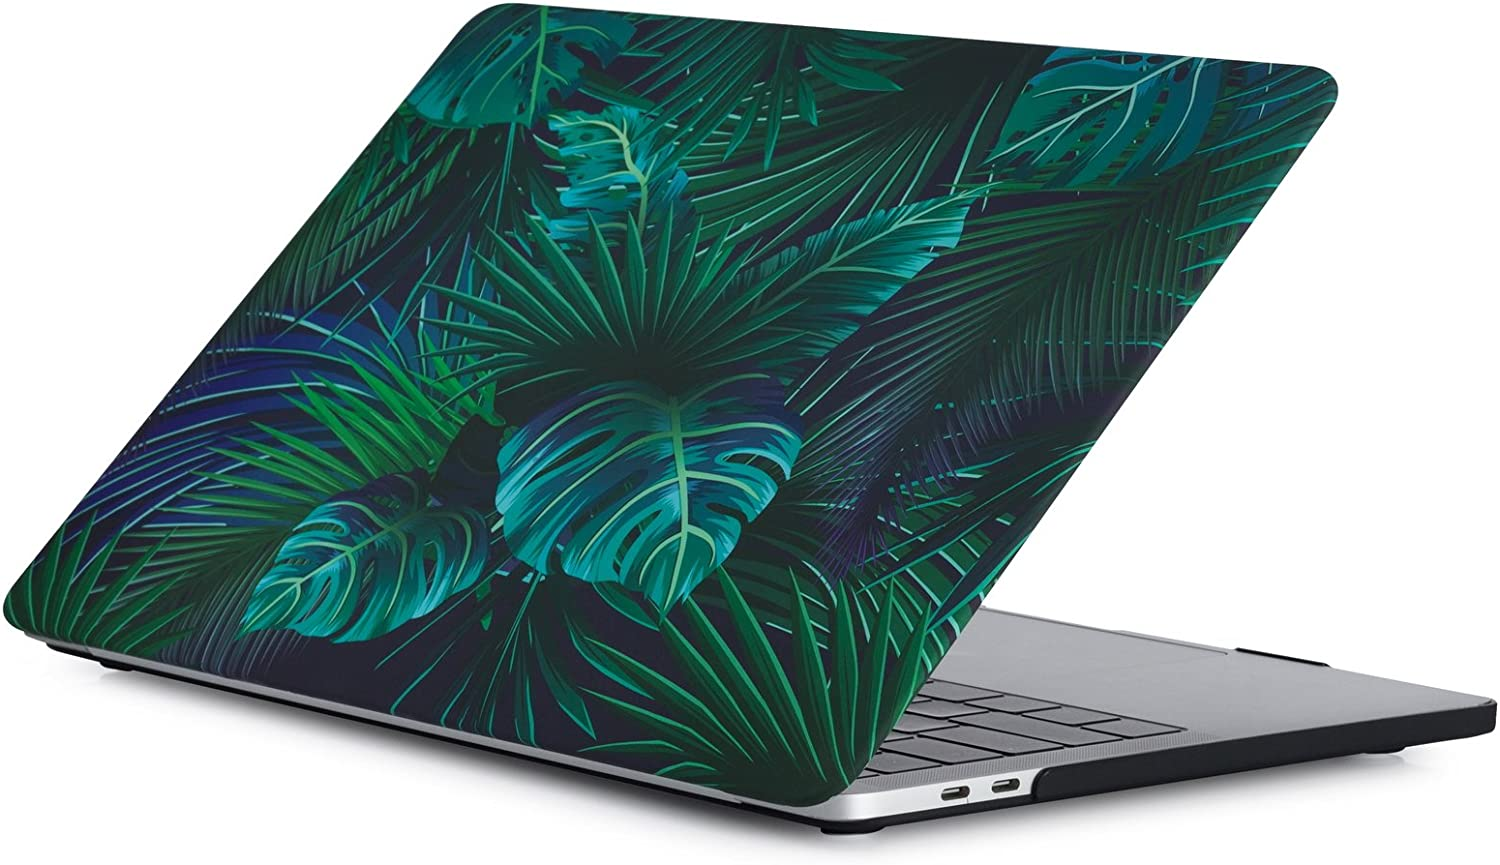 MacBook Pro 15 Inch Case A1990/A1707 (Release 2019/2018/2017/2016), iZi Way Tropical Plant Wide Leaf Design Flexible Hard Shell Case Cover for Mac Pro 15 with Retina Display & Touch Bar - Palm Leaves